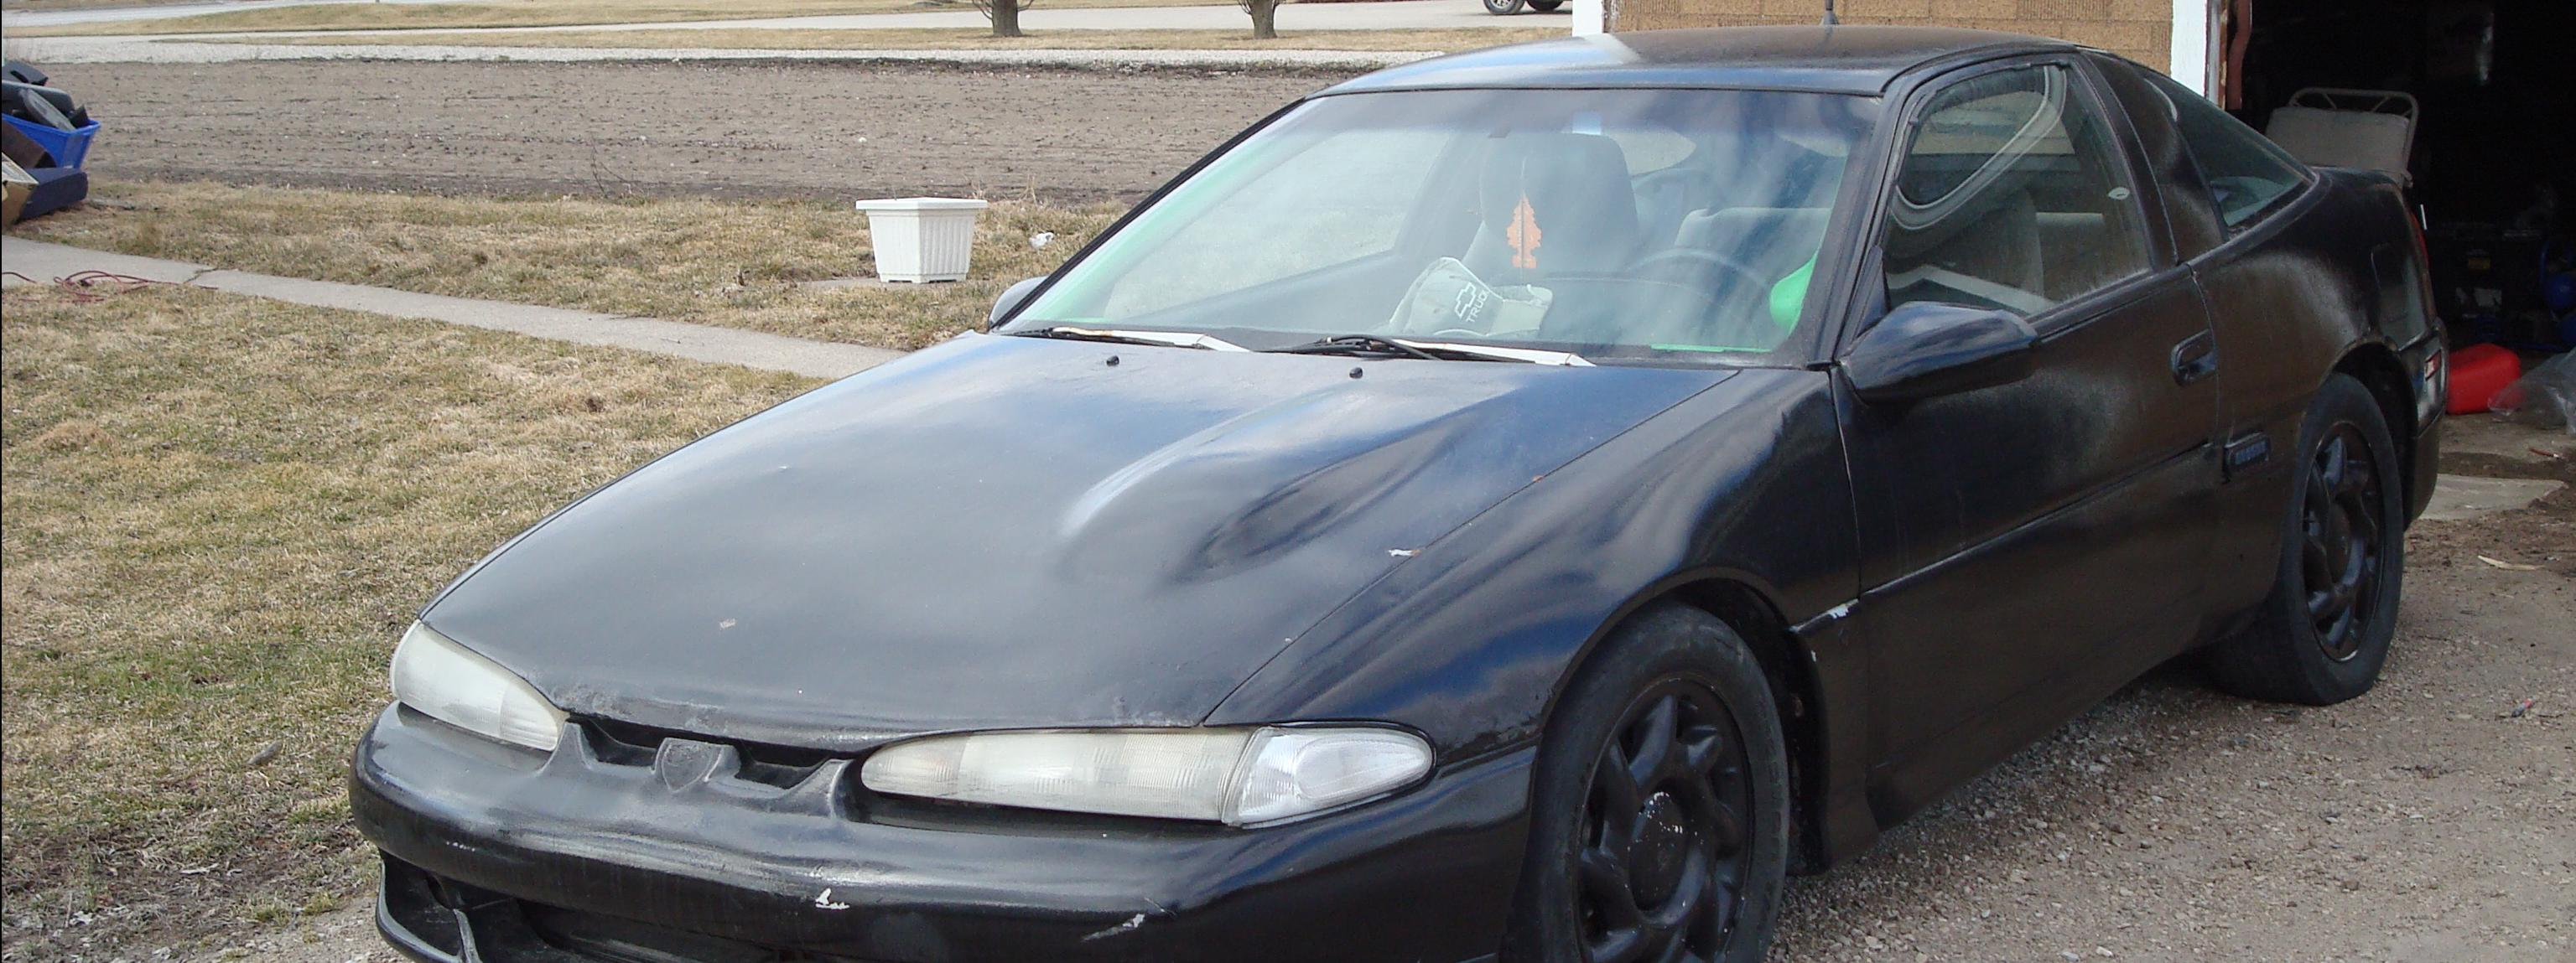 dsmglen 1992 Eagle Talon